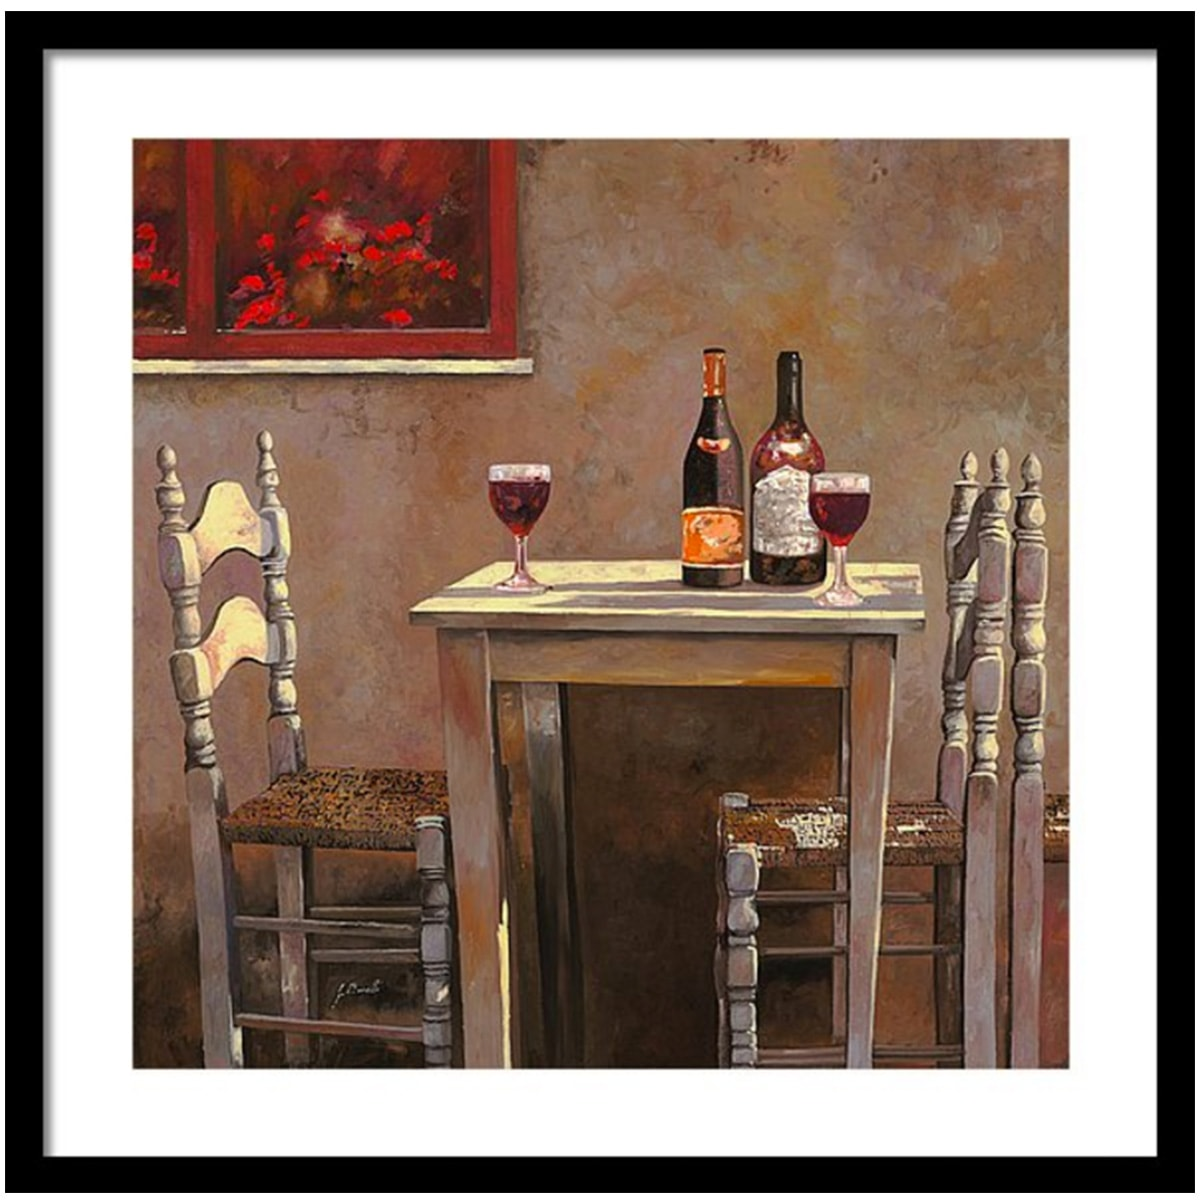 Sell art online how to sell art online for Buy and sell paintings online